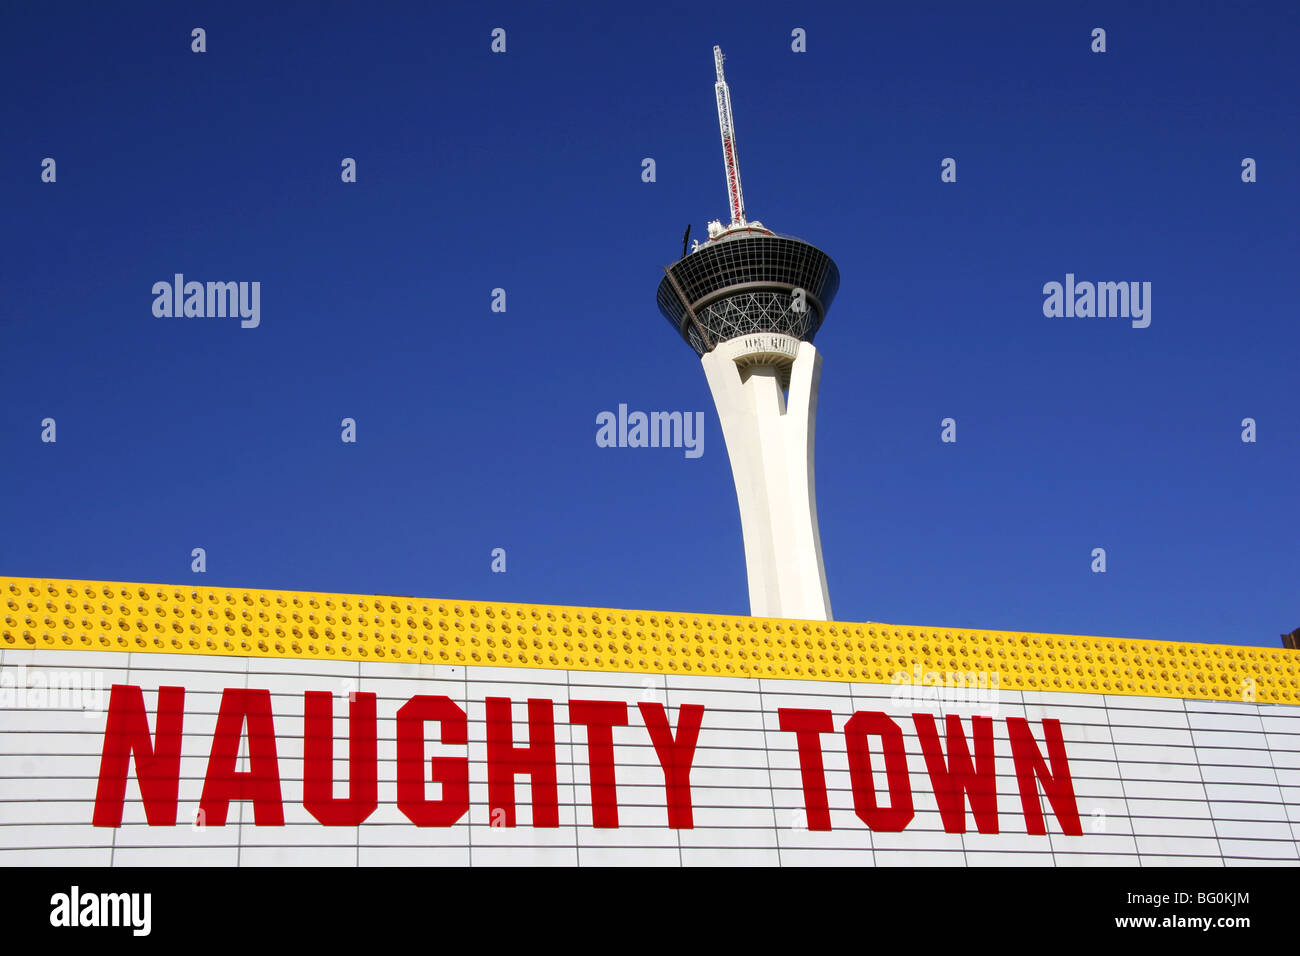 Naughty Town Sign below the Stratosphere Tower in Las Vegas Nevada. Stock Photo